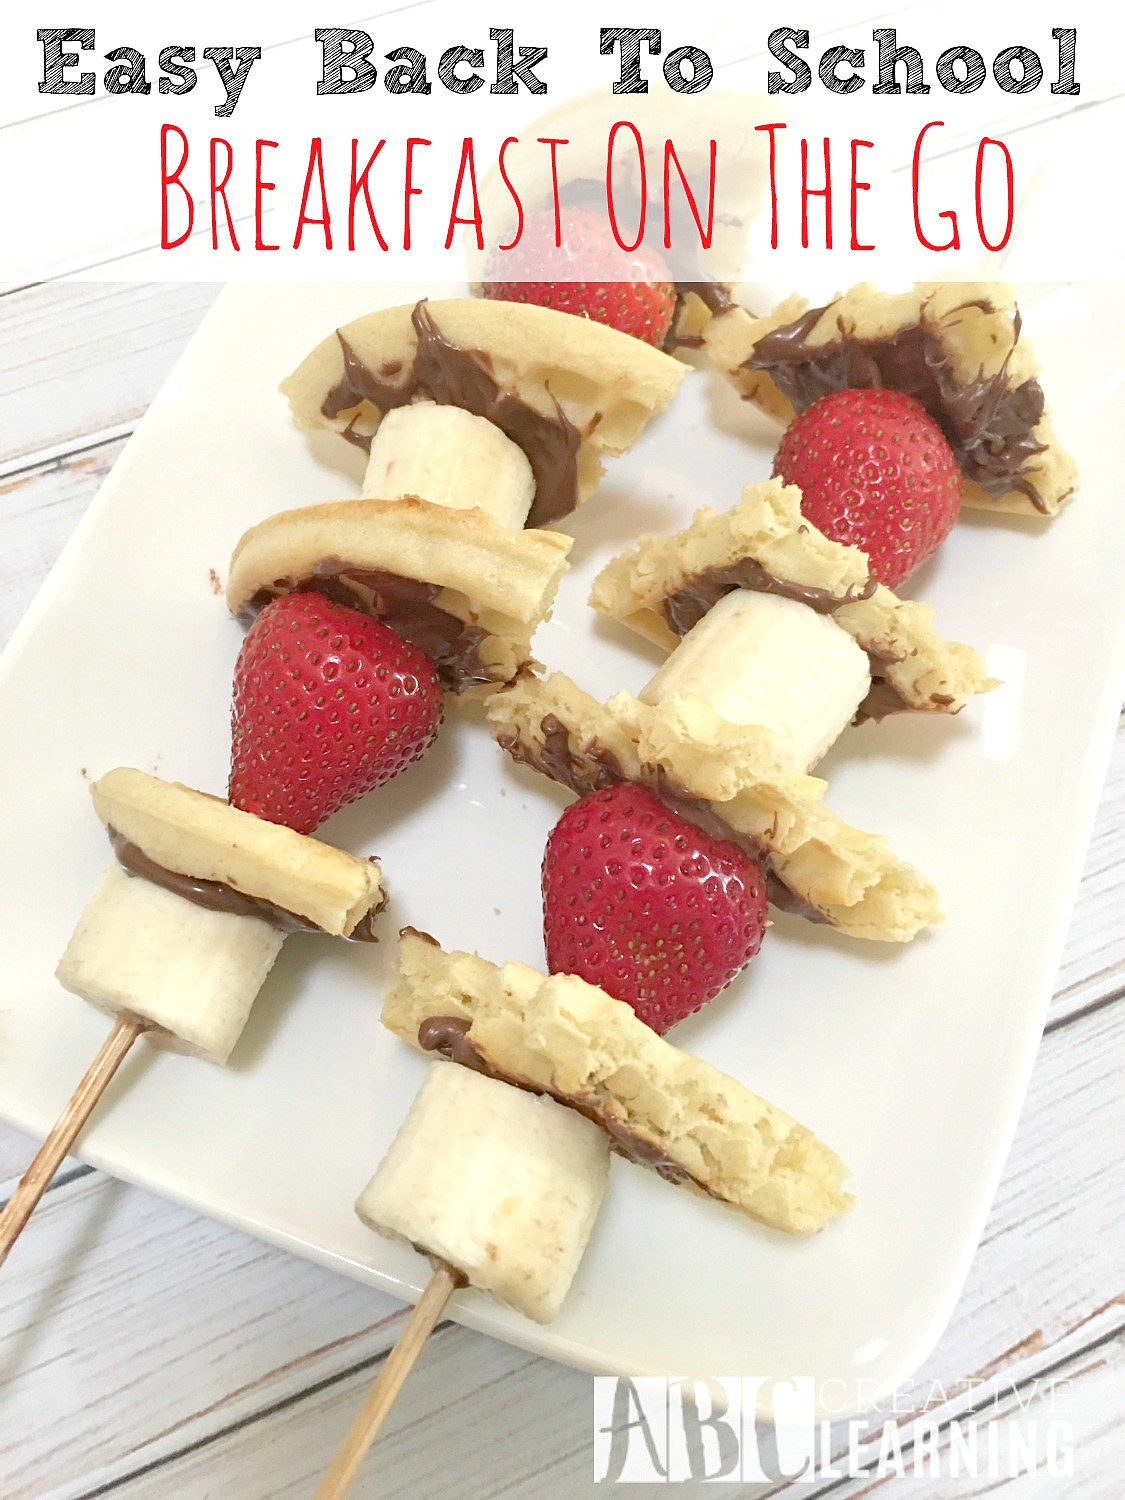 Easy Back To School Breakfast On The Go - abccreativelearning.com